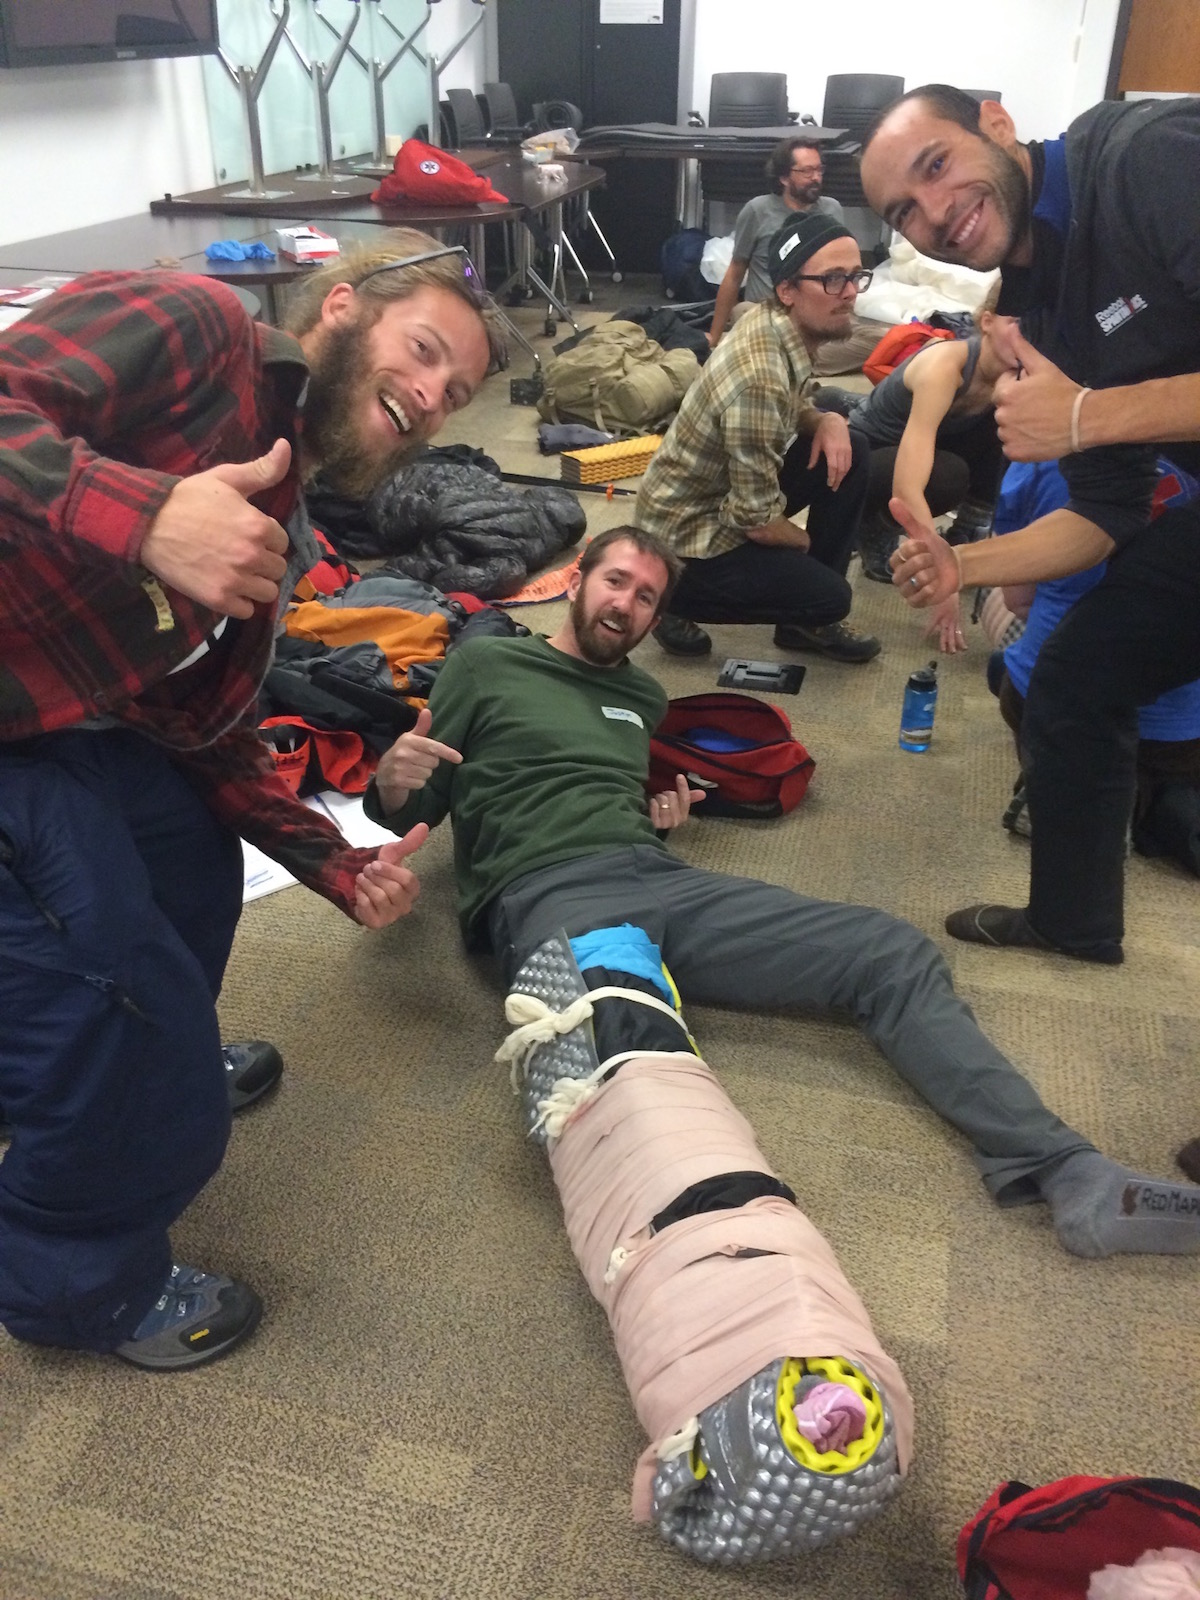 Our Wilderness First Responder class taught us to be resourceful with our gear!